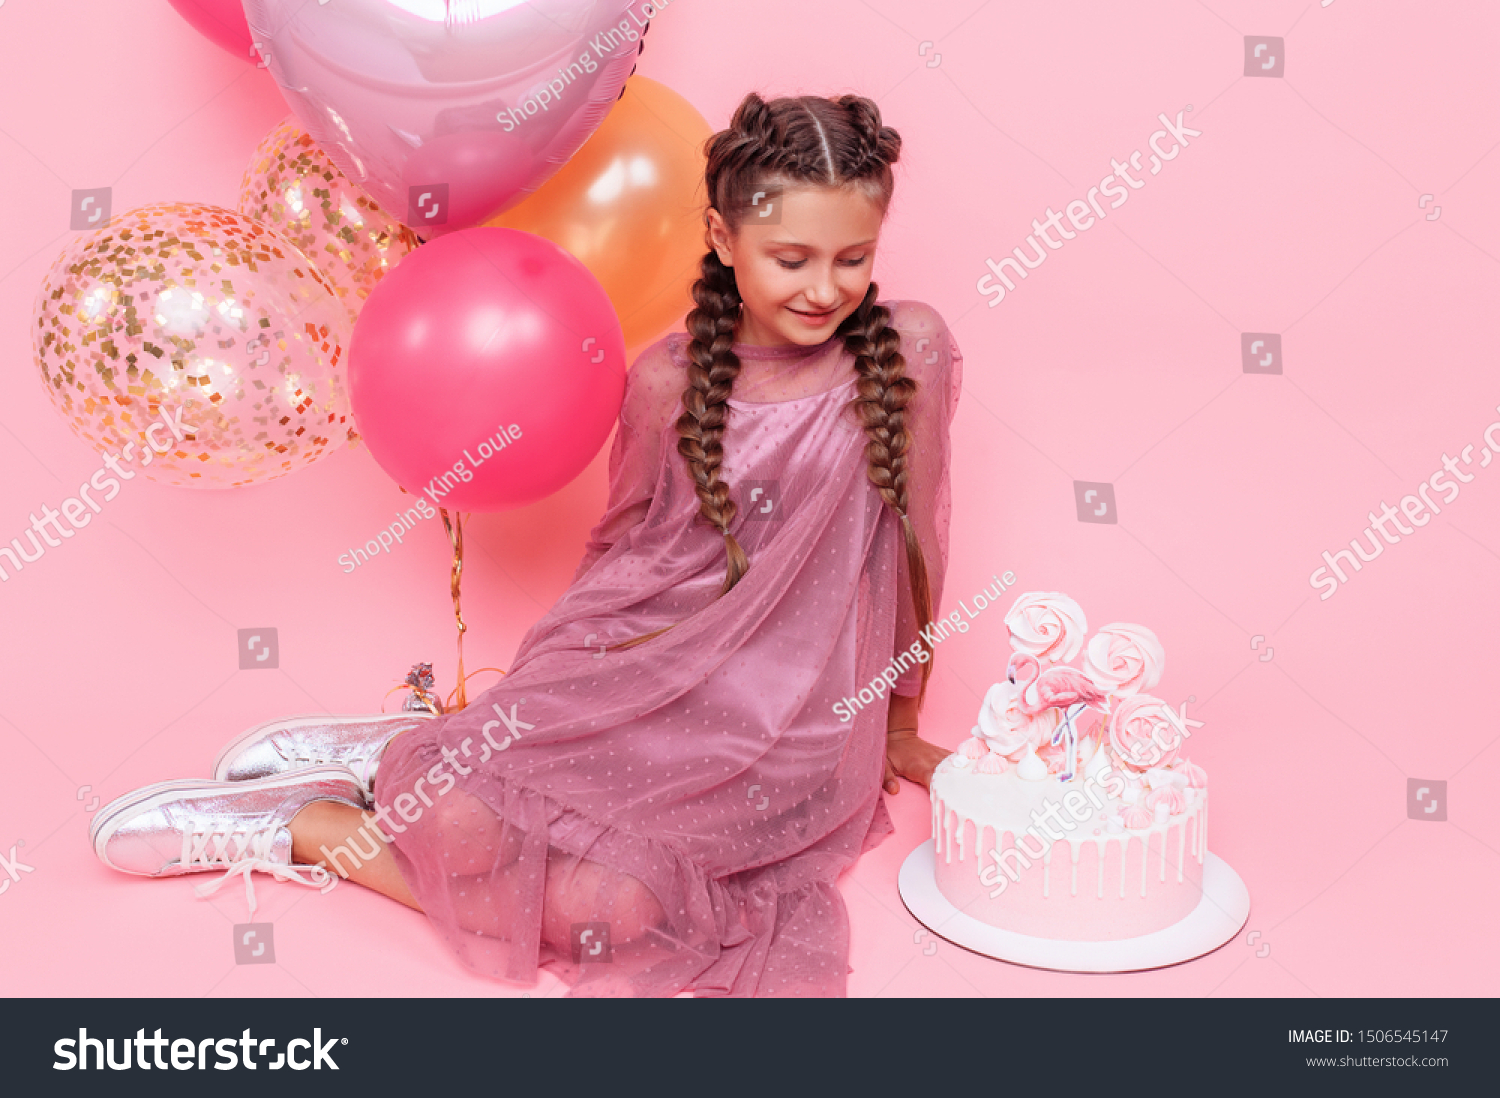 Pleasant Teenage Girl Balloons Birthday Cake Posing Stock Photo Edit Now Birthday Cards Printable Opercafe Filternl